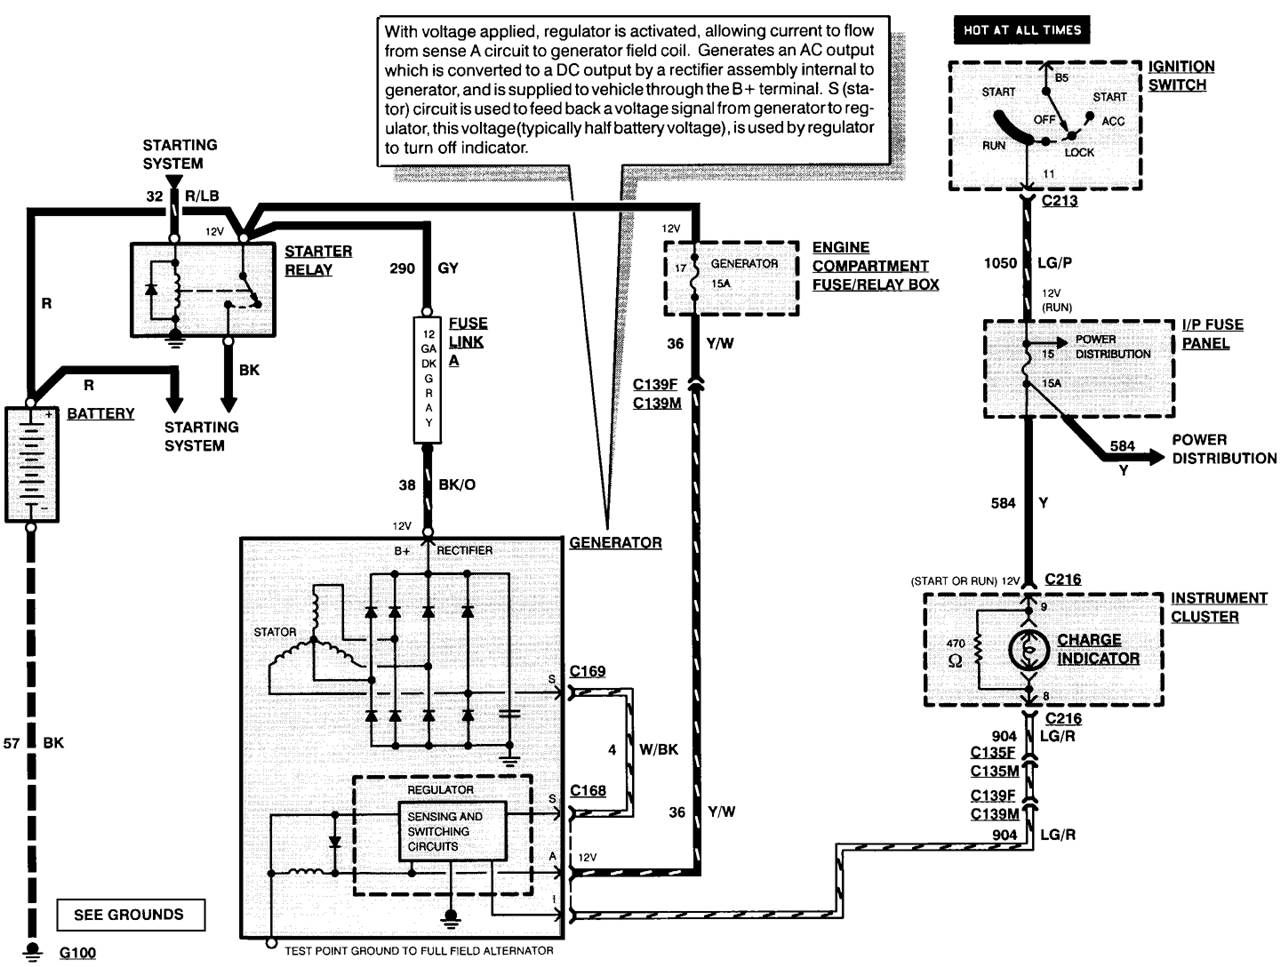 ford 2 wire alternator diagram ford alternator wiring diagrams carsut understand cars and ford alternator wiring diagram internal regulator